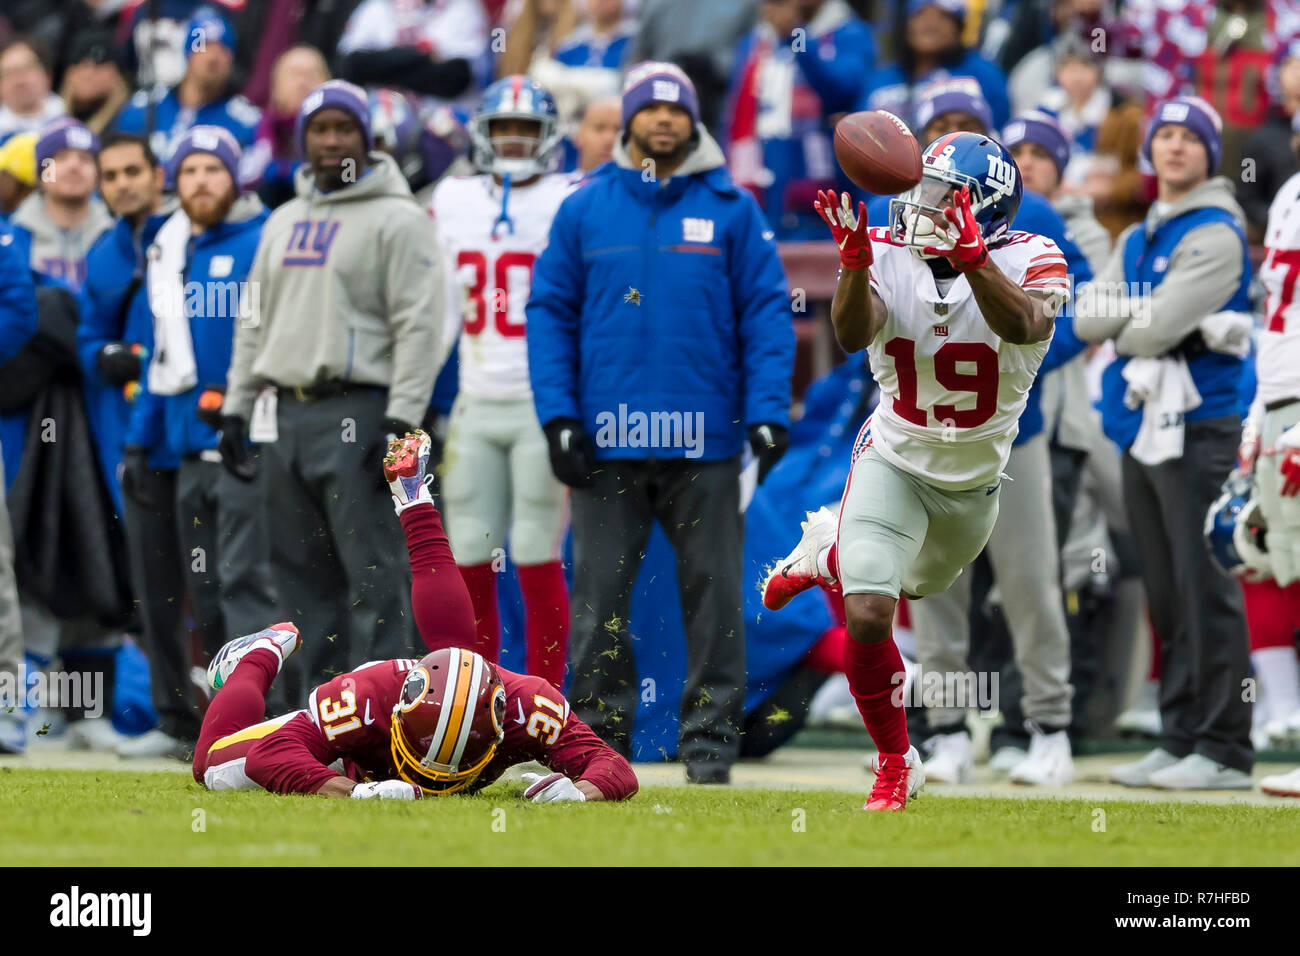 Landover, Maryland, USA. 09th Dec, 2018. New York Giants wide receiver Corey Coleman (19) attempts to catch a pass in front of Washington Redskins cornerback Fabian Moreau (31) during the first half of the NFL game between the New York Giants and the Washington Redskins at FedExField in Landover, Maryland. Scott Taetsch/CSM/Alamy Live News Stock Photo